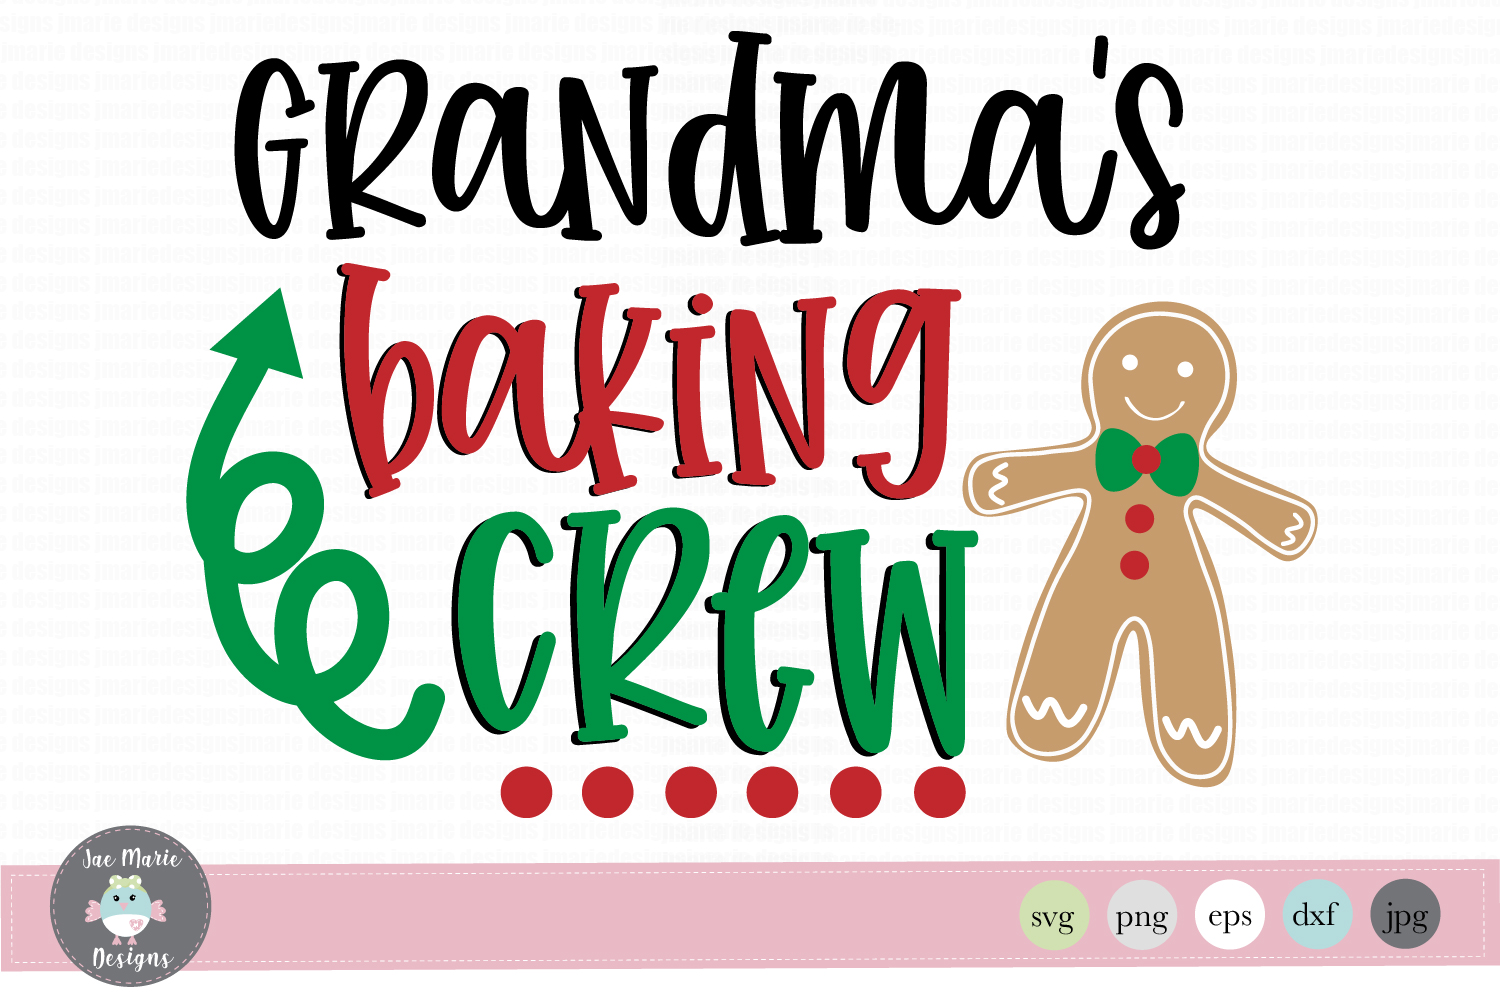 Download Free Grandma S Baking Crew Graphic By Thejaemarie Creative Fabrica for Cricut Explore, Silhouette and other cutting machines.